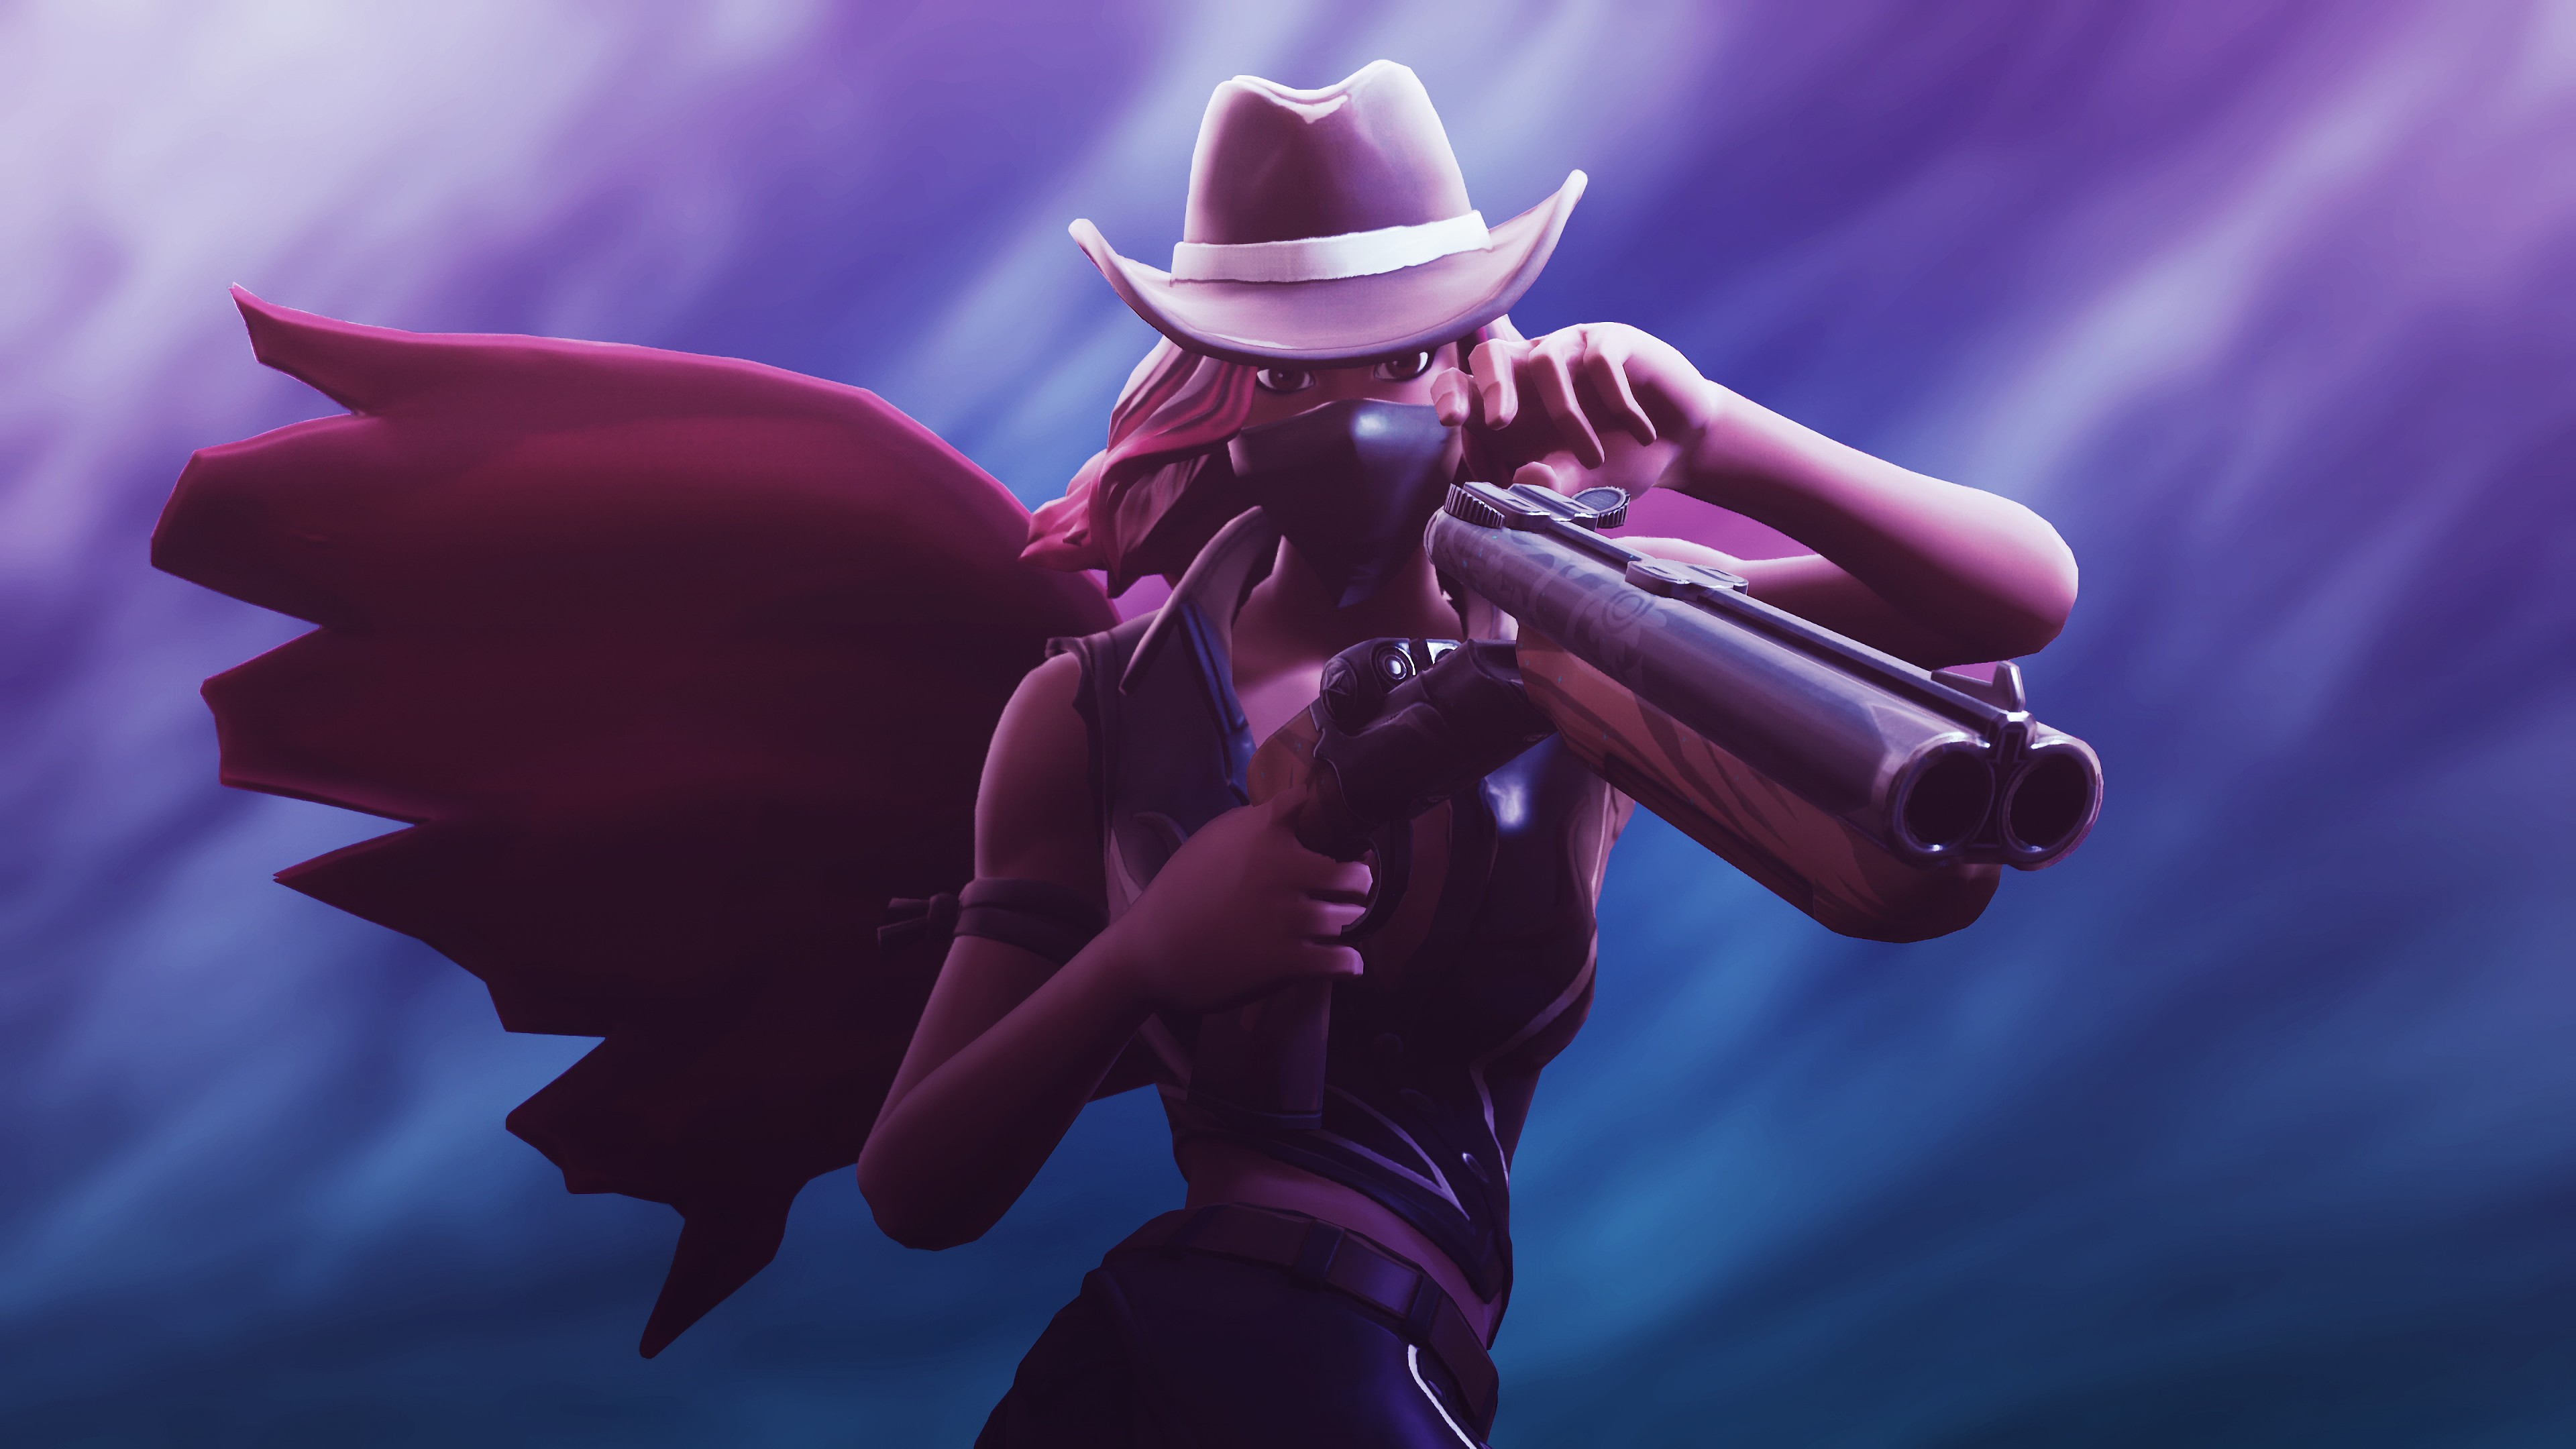 calamity fortnite skin 4k wallpapers - fortnite iphone skin